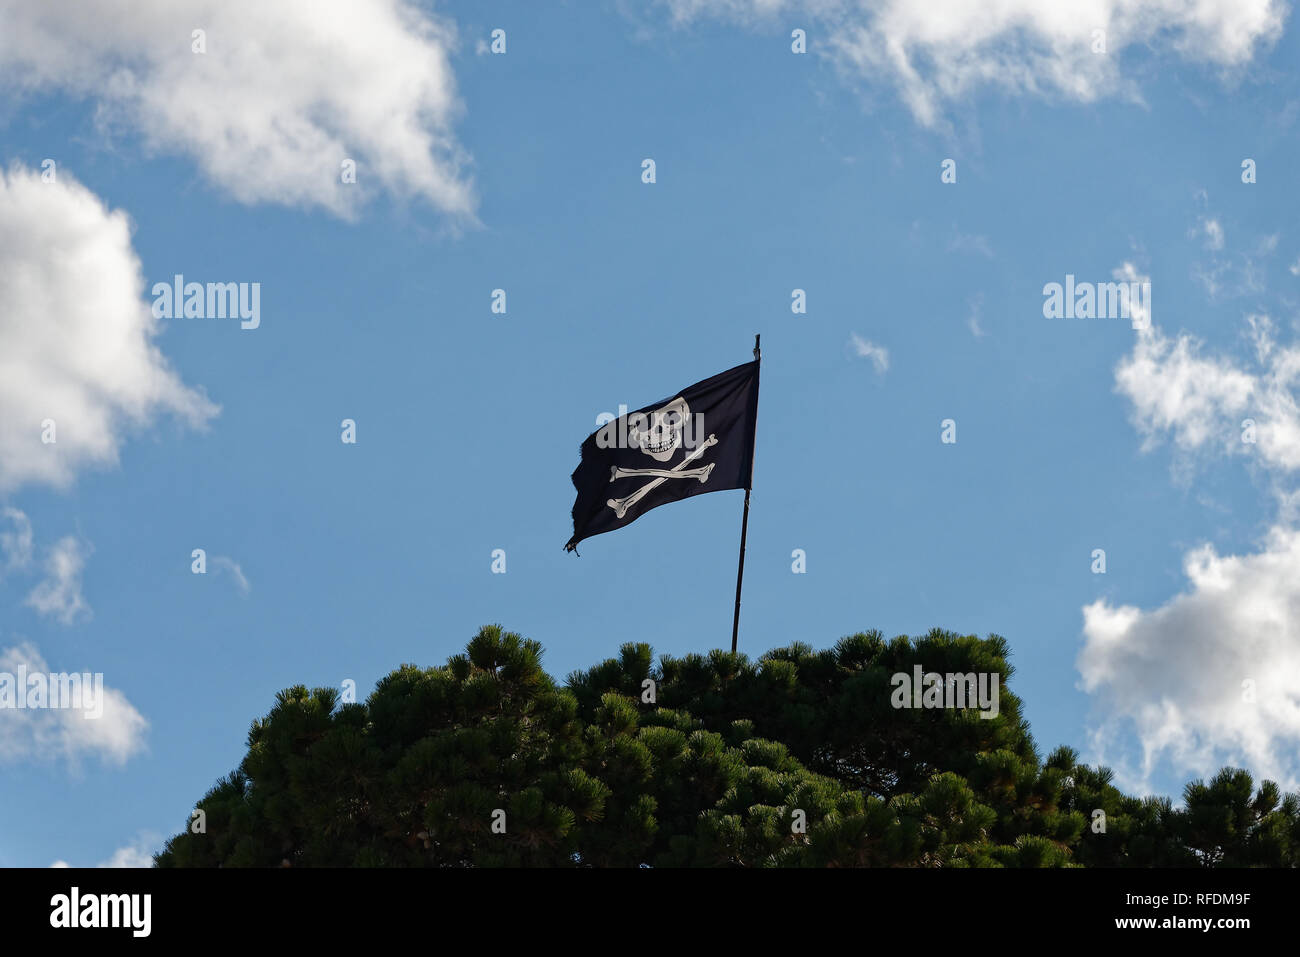 The black and white, jolly roger, skull and cross bones pirate flag flies high from a green tree. - Stock Image